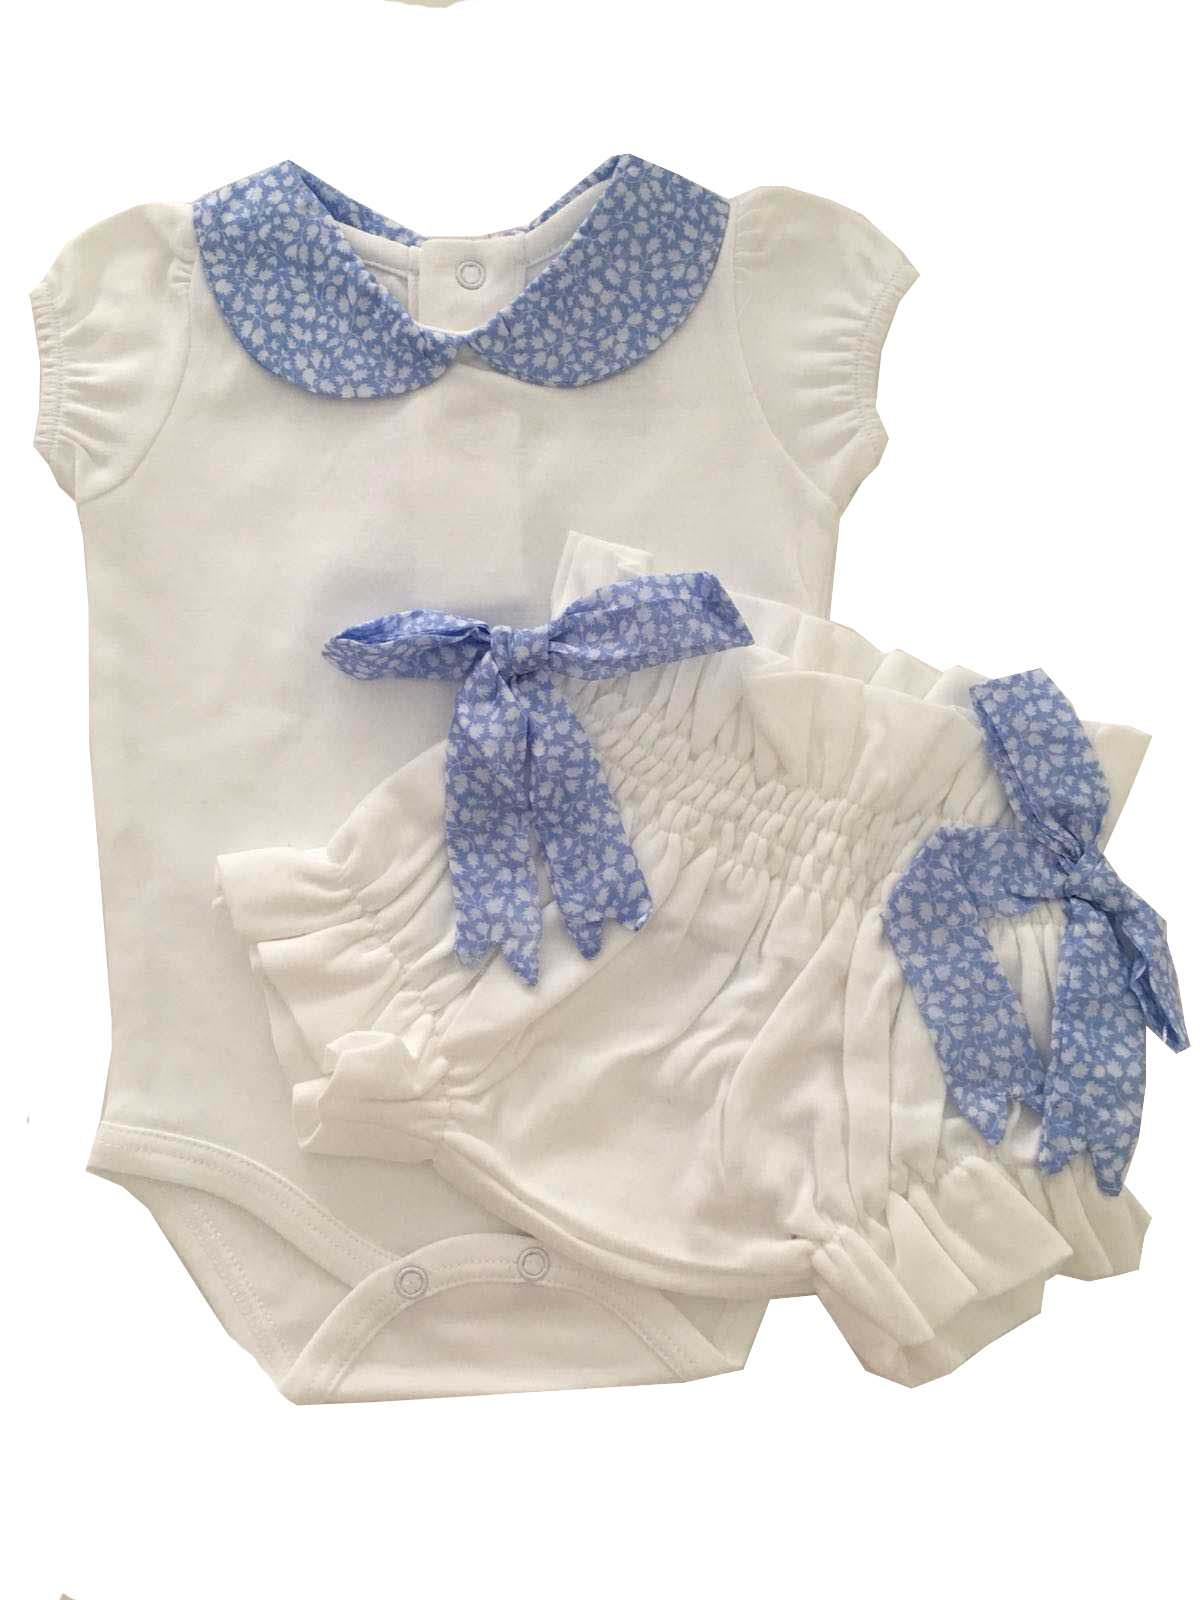 Pima Cotton Body and culotte baby girl